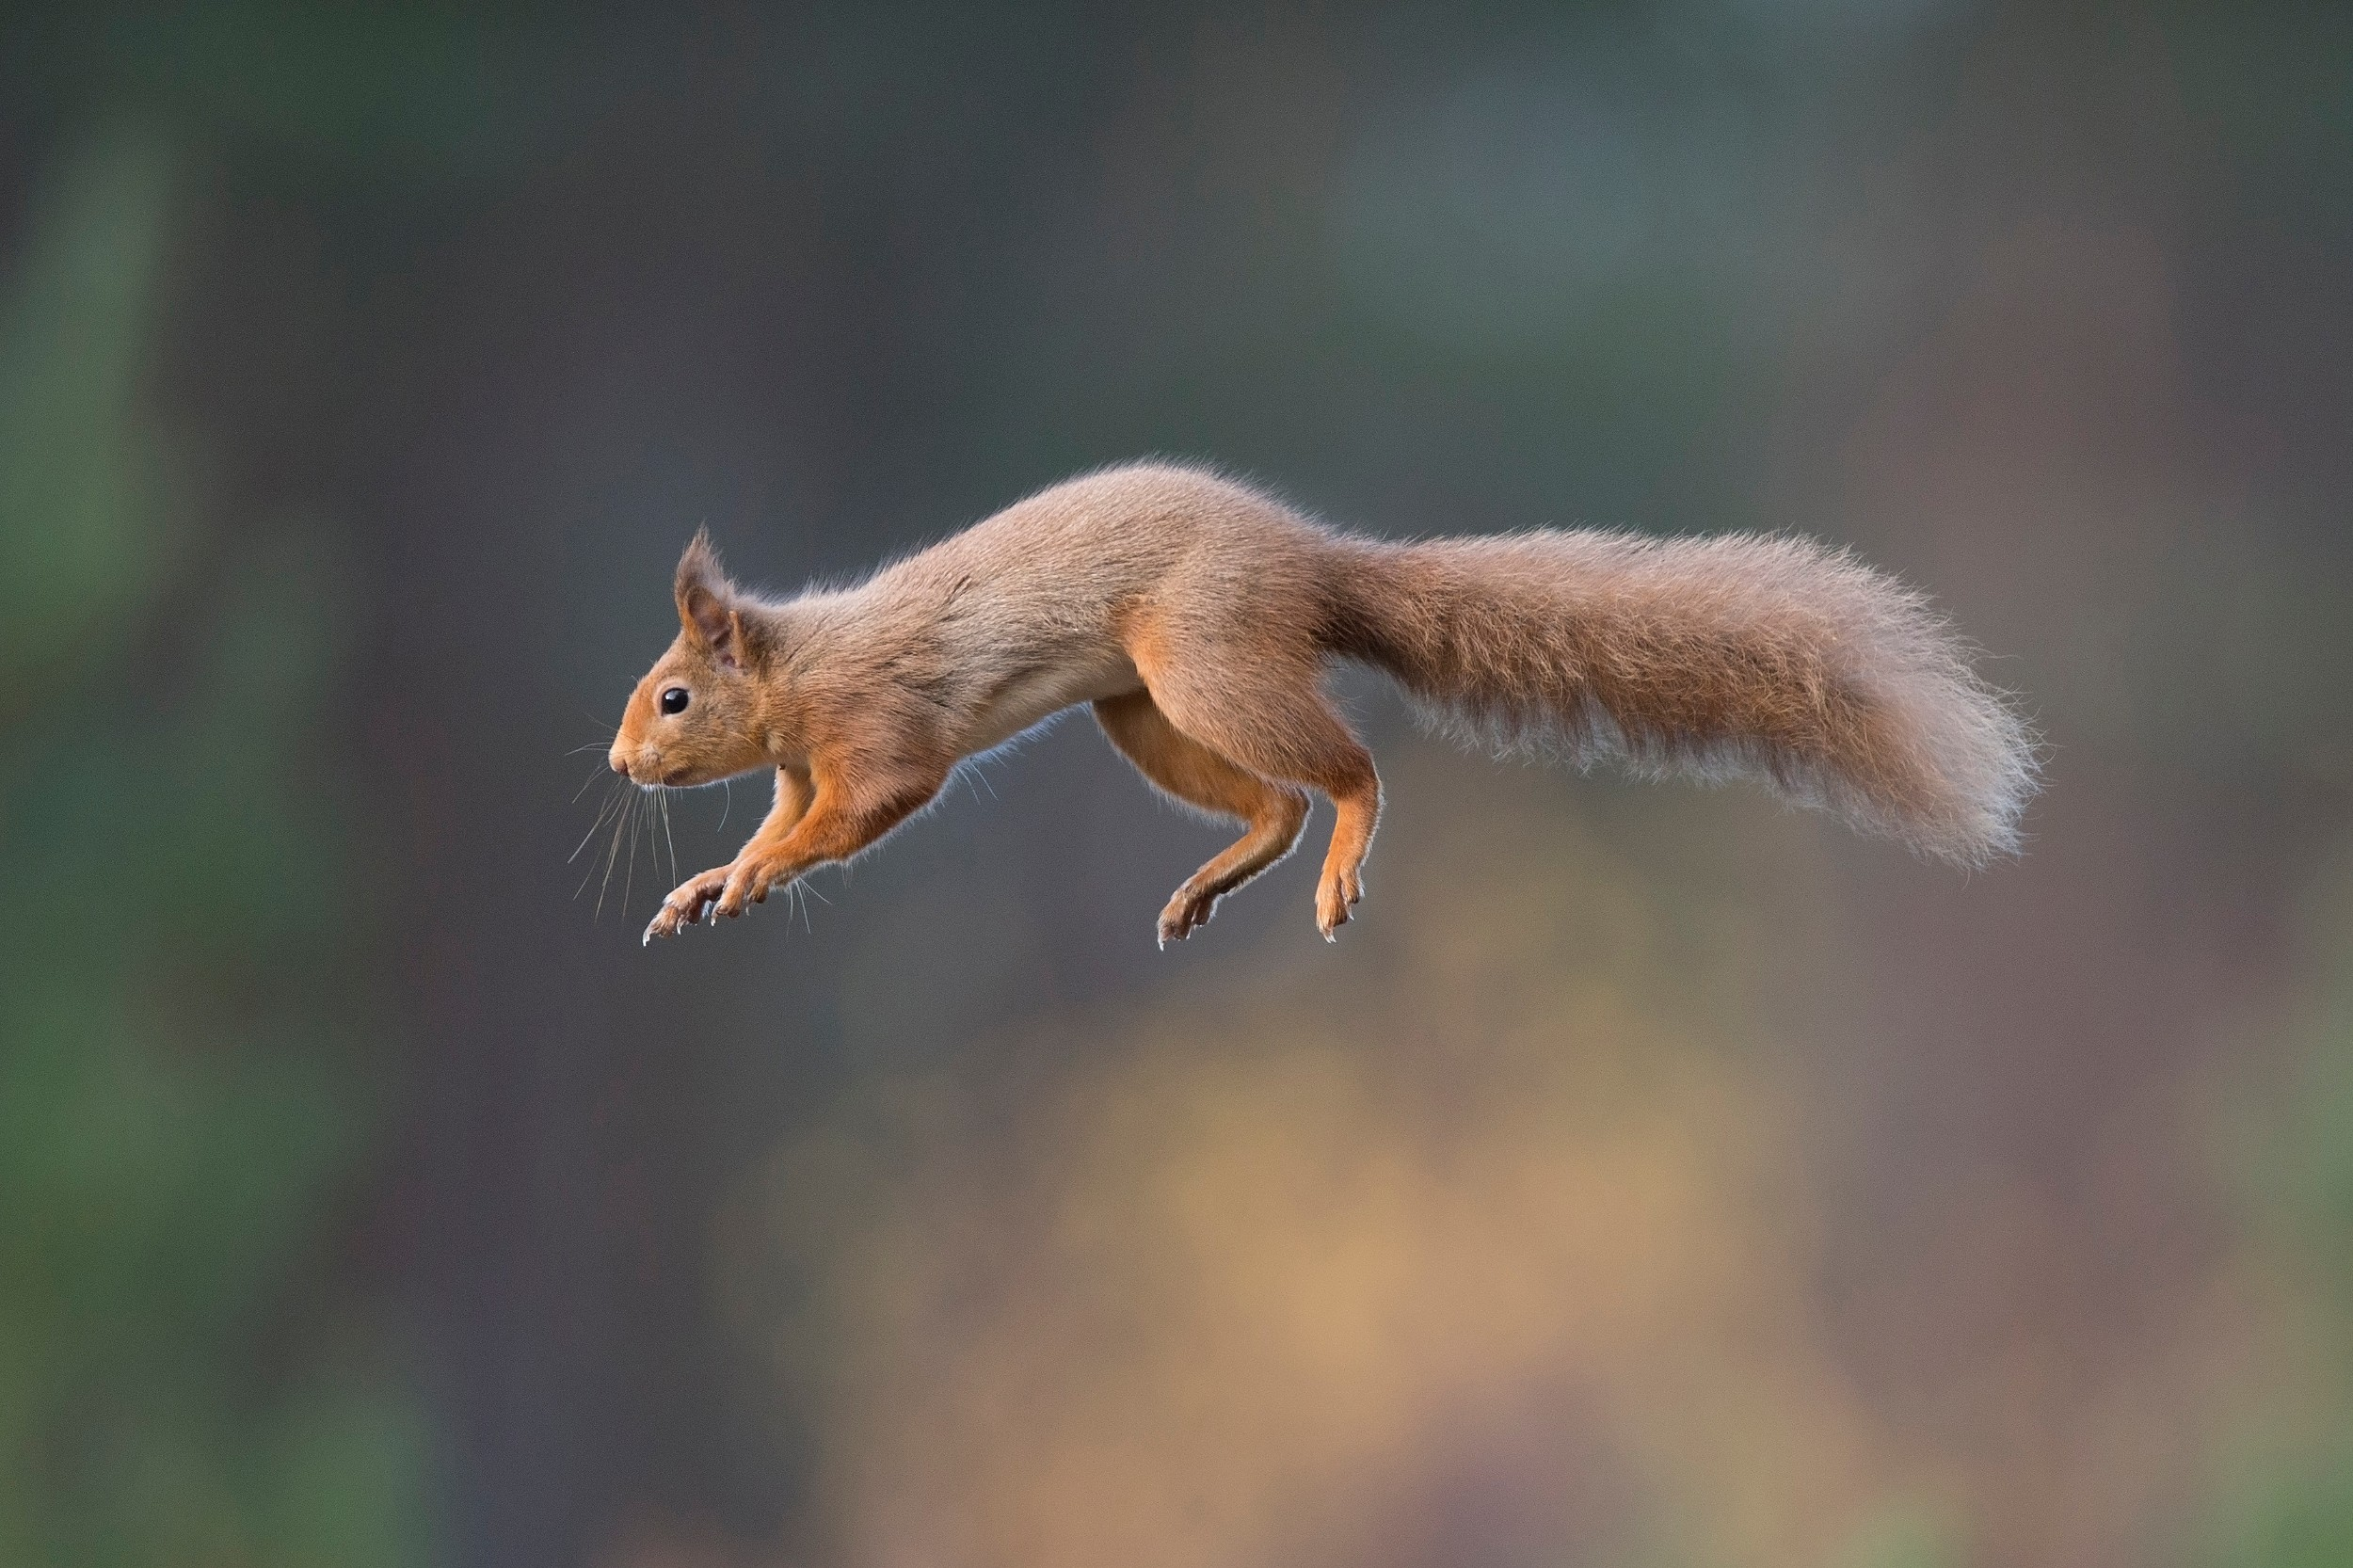 Wildlife_Alladale Wilderness Reserve_Red Squirrel_NS-PC-1224222.jpg